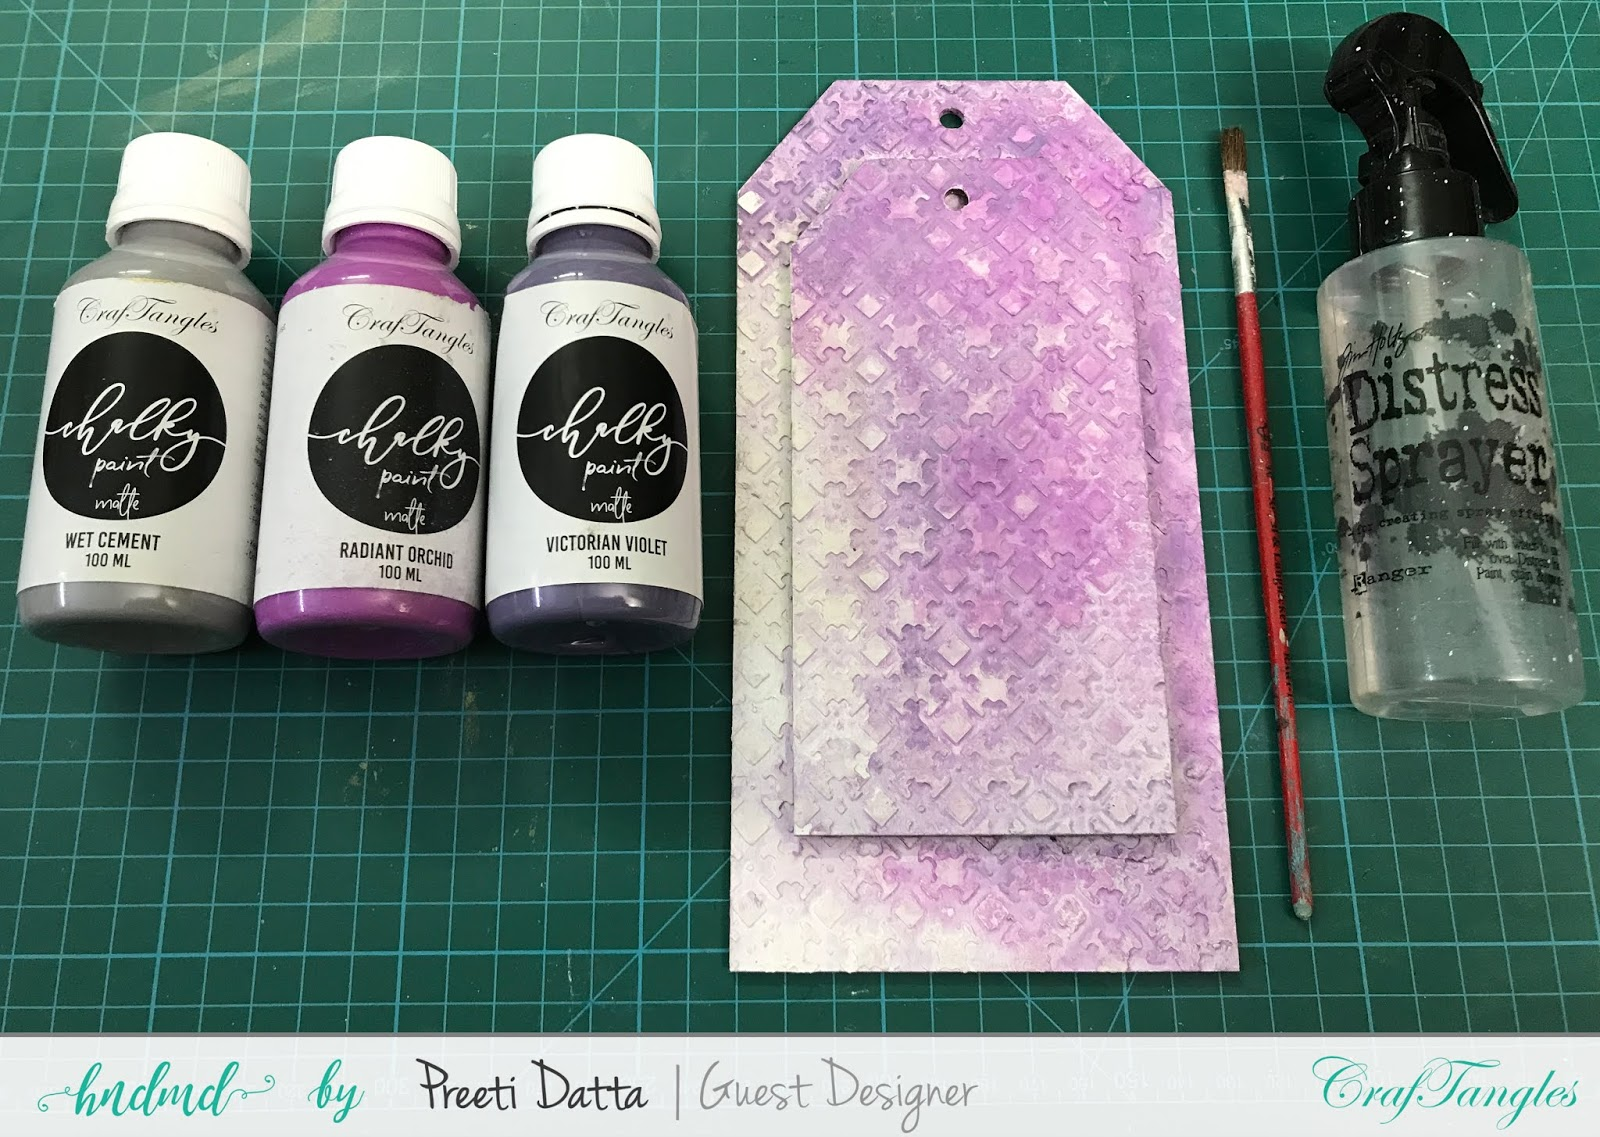 Floral Mixed Media Tag (with Pictorial) by Preeti Datta 19